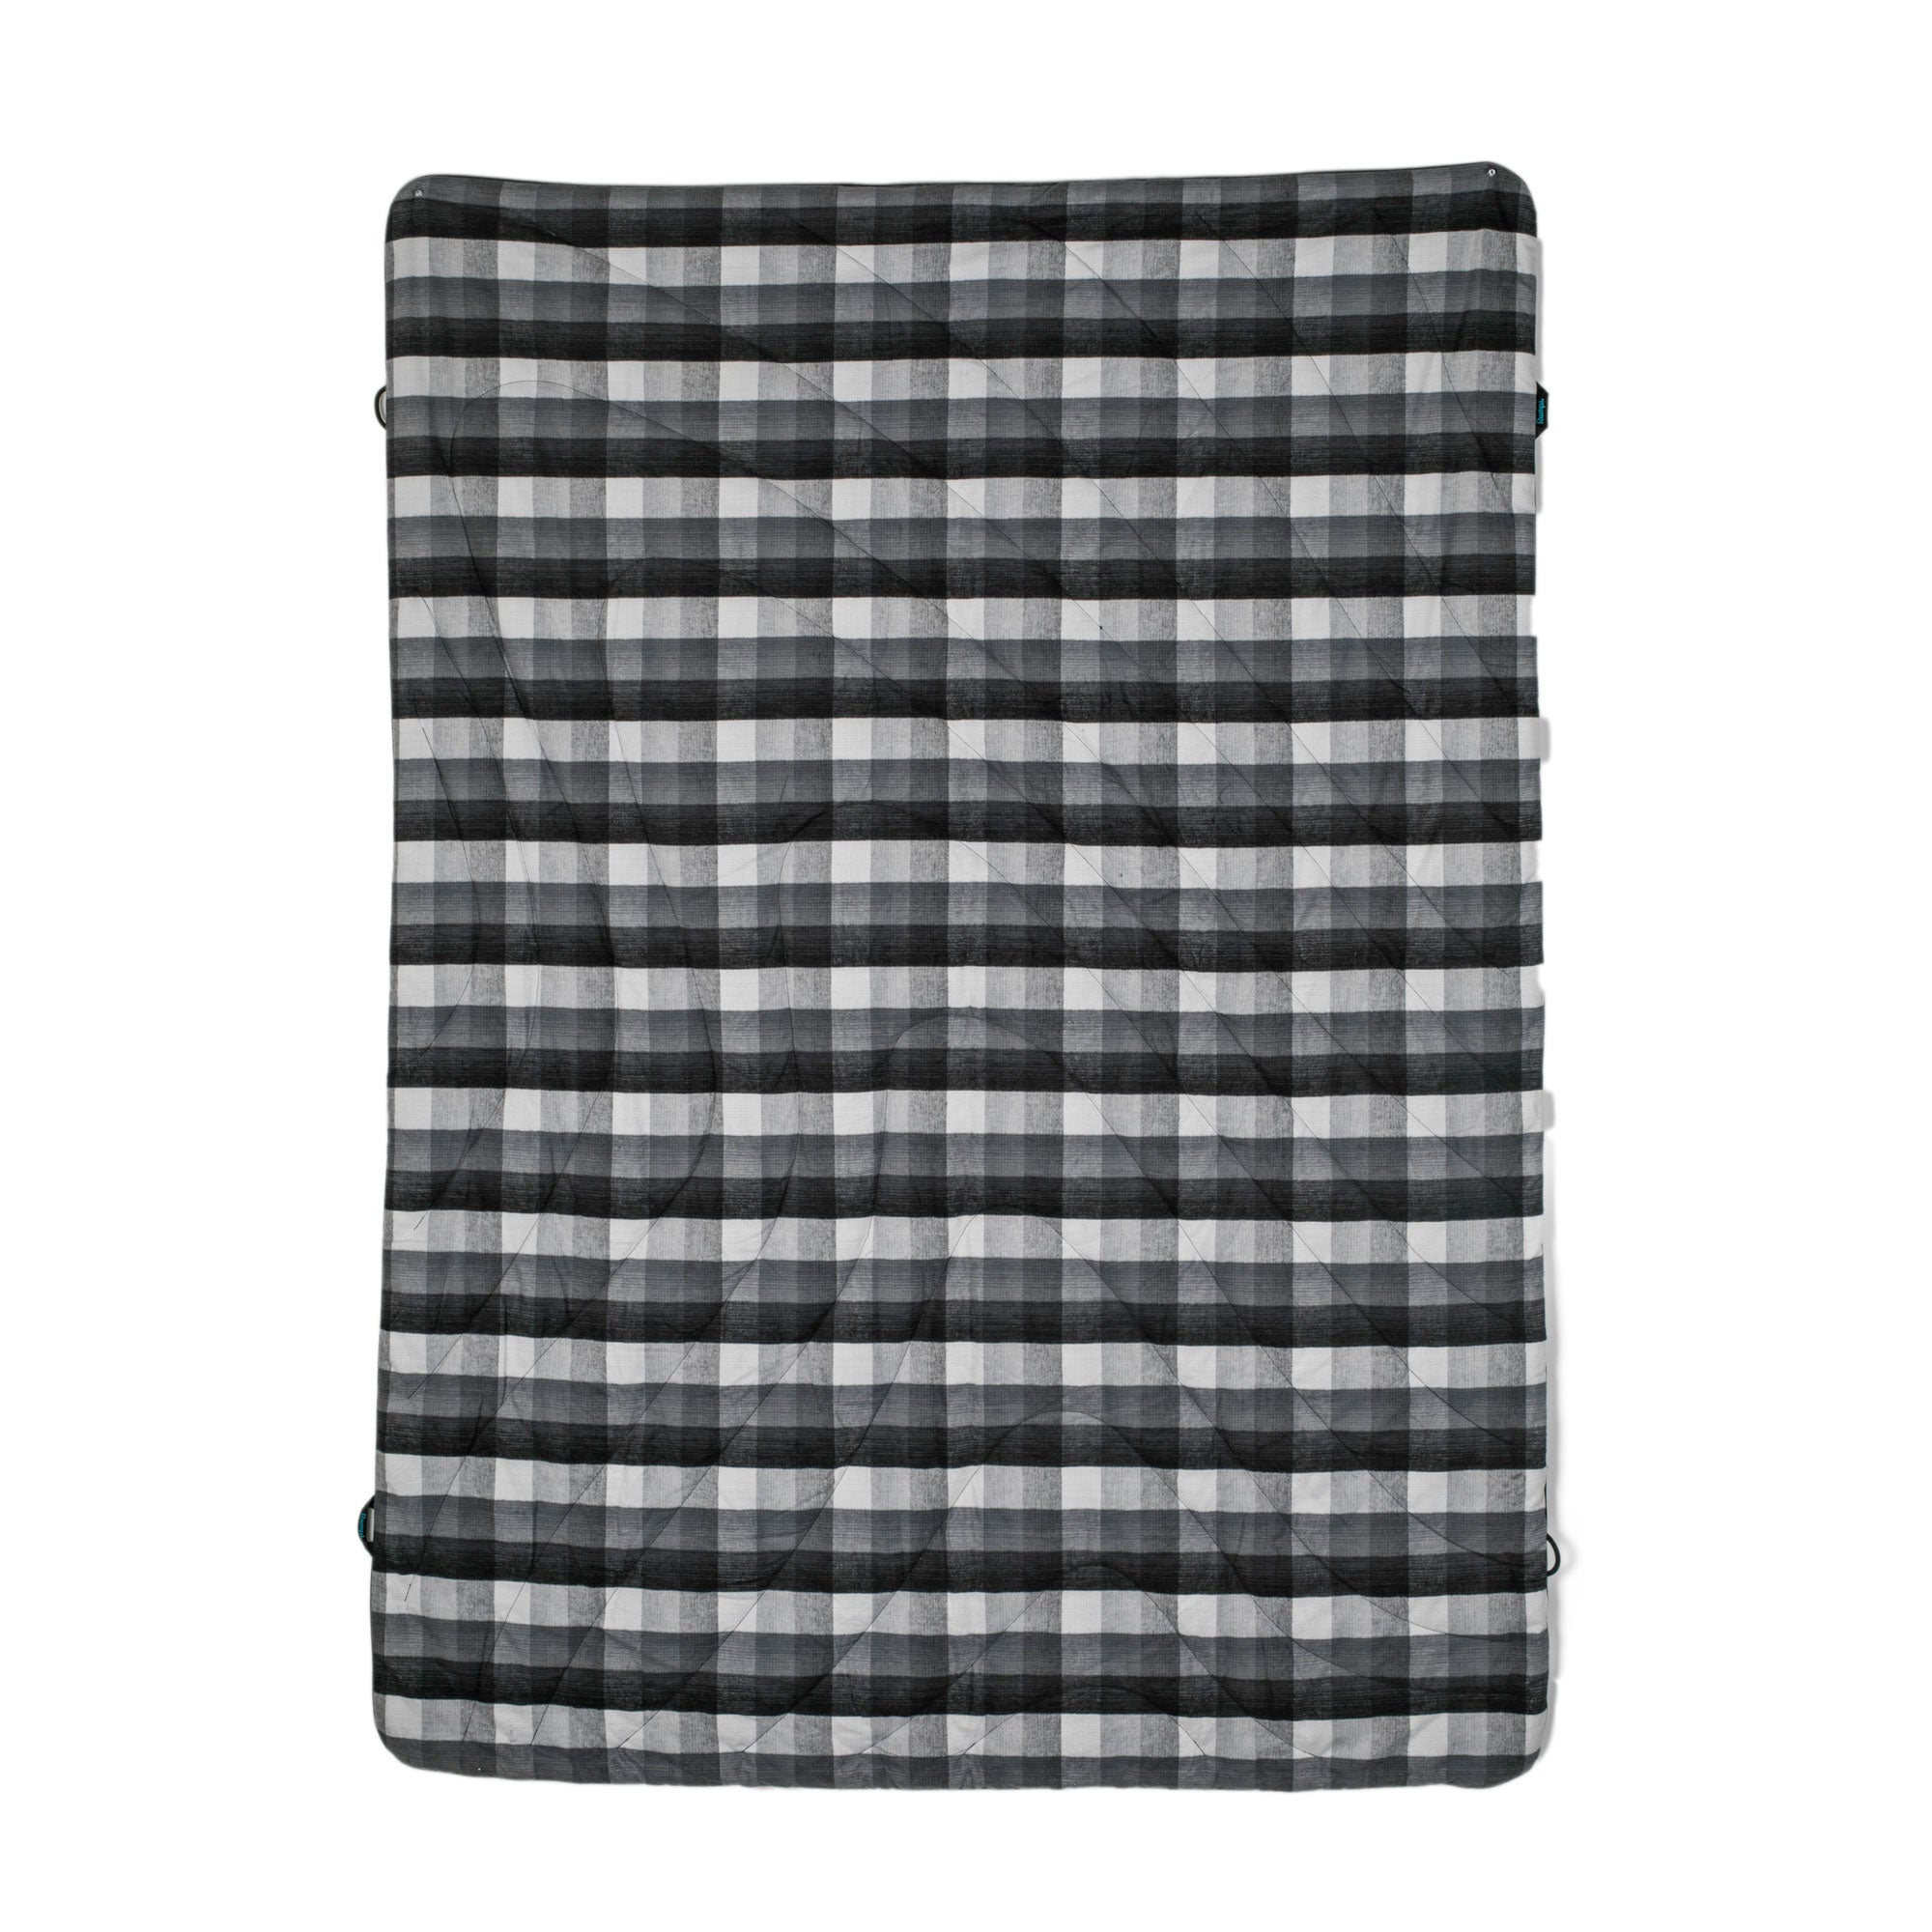 Pladra x Rumpl Insulated Flannel Blanket